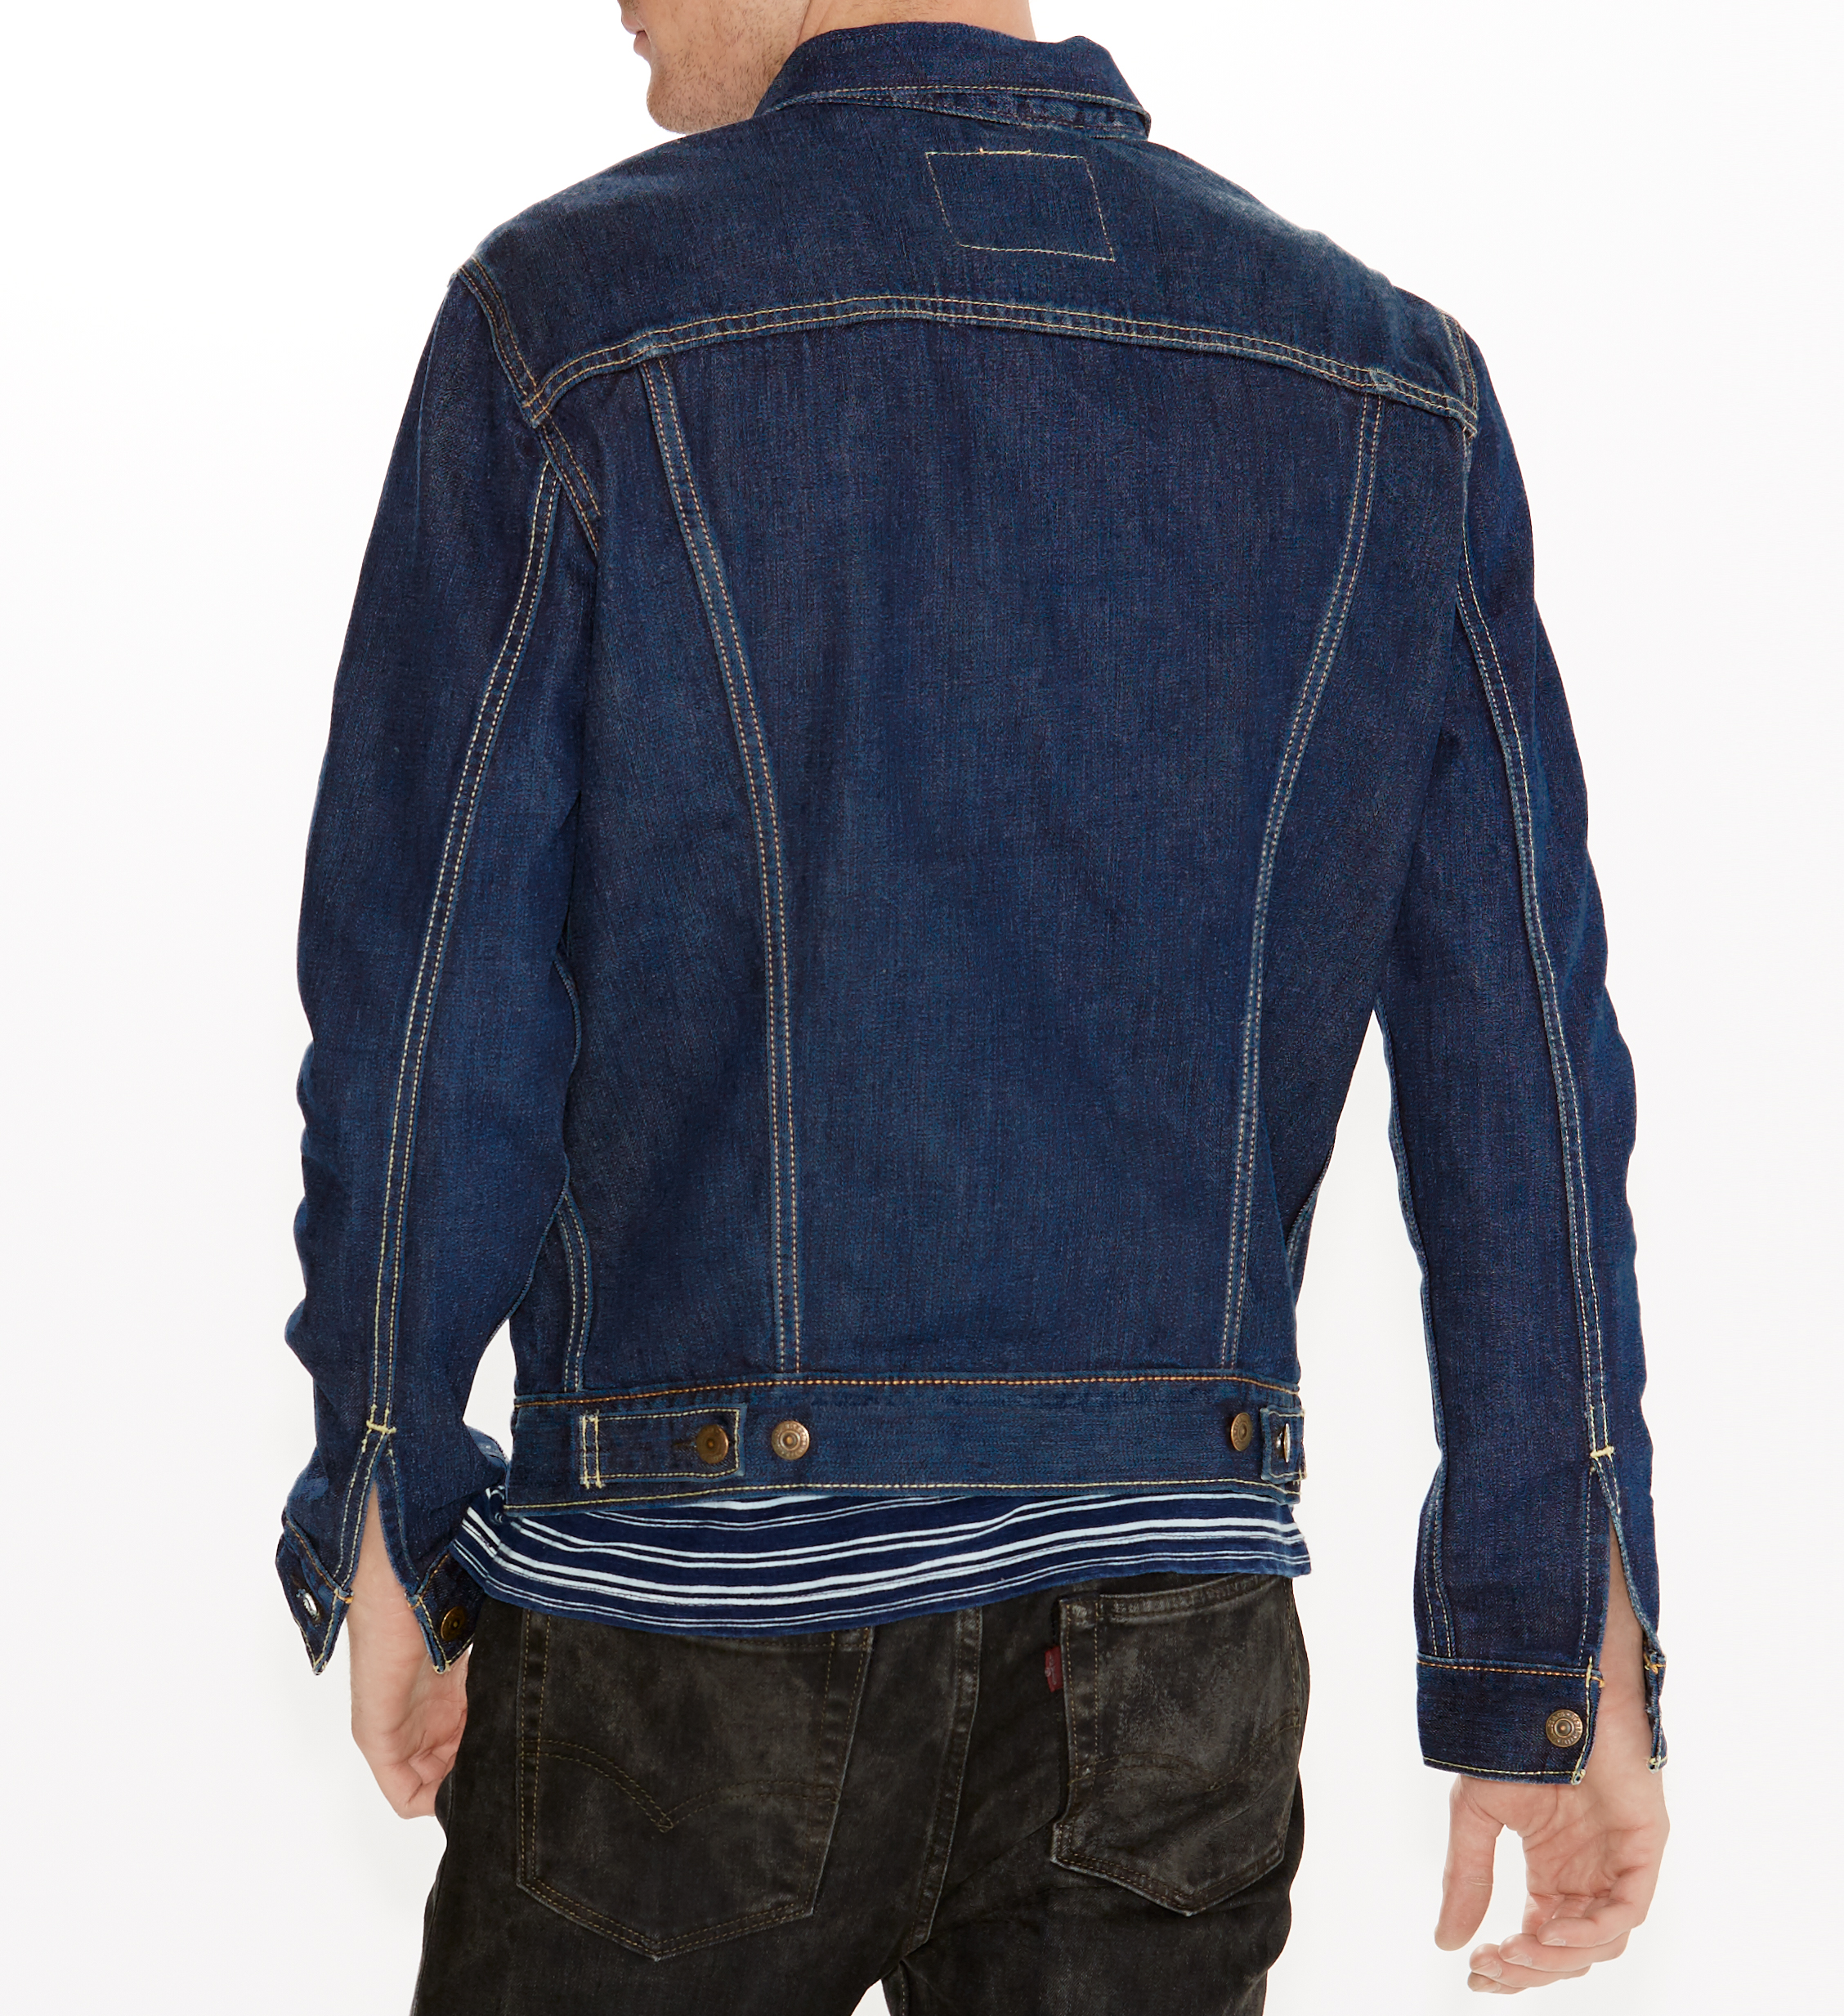 LEVIS Jacke Jeansjacke 72334-0147 THE TRUCKER JACKET CONIFER W18-LVJ1